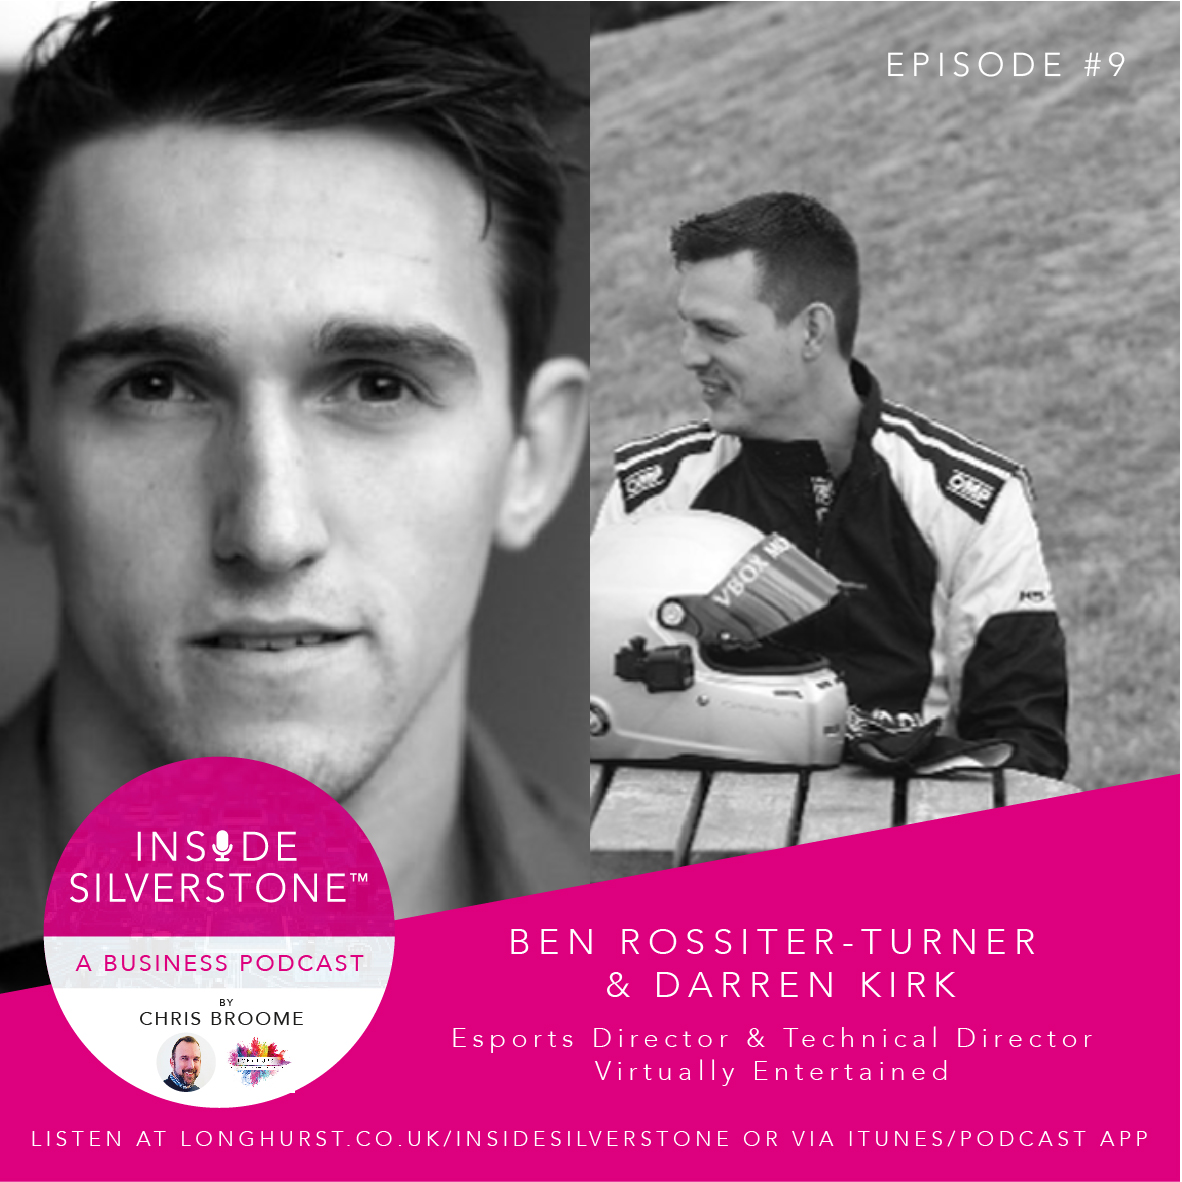 Ben Rossiter-Turner and Darren Kirk, from Virtually Entertained